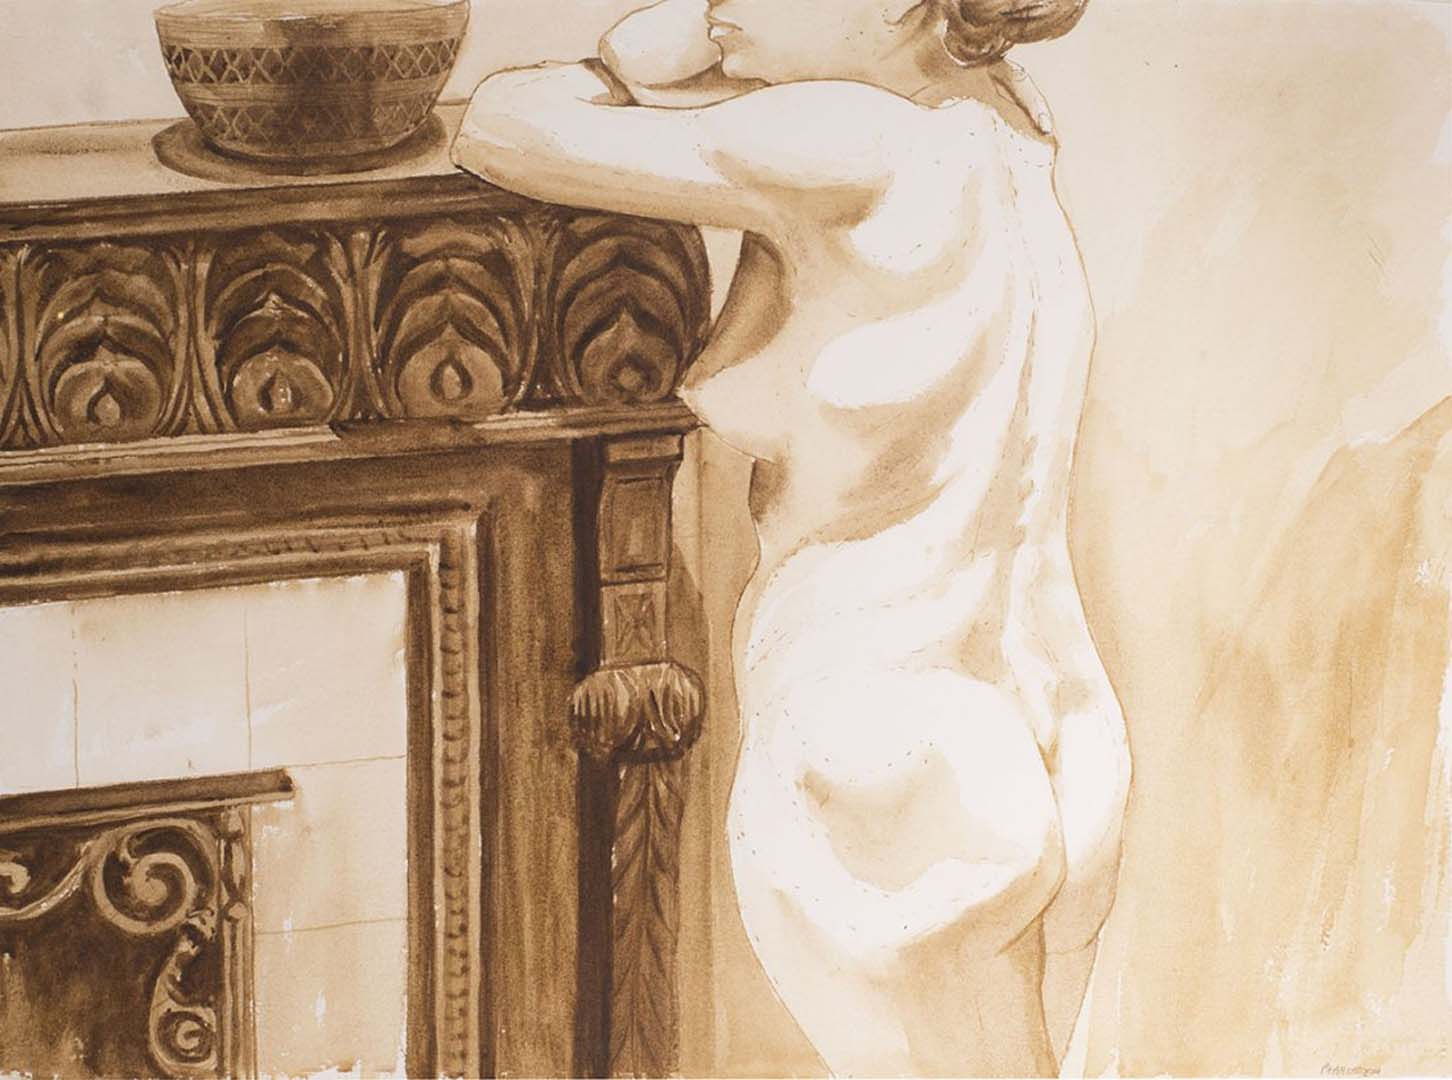 1973 Standing female model leaning on fireplace Watercolor 22.4 x 30.3in